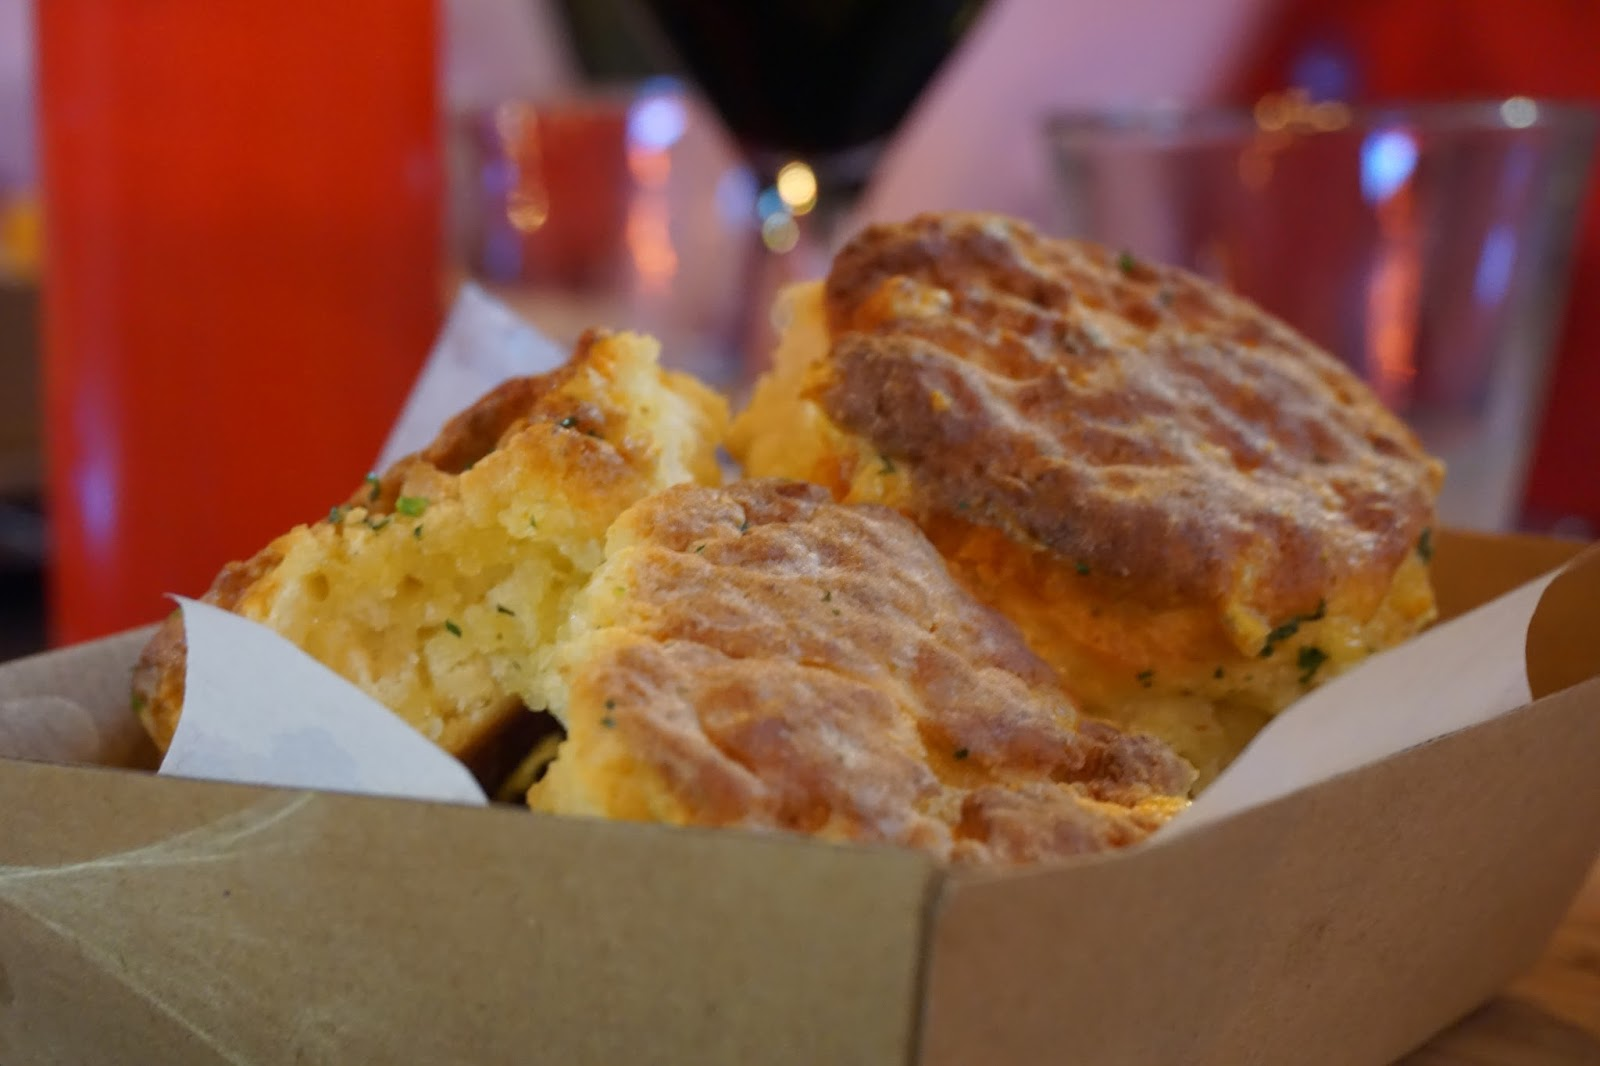 Biscuits at The Curious Squire, North Adelaide